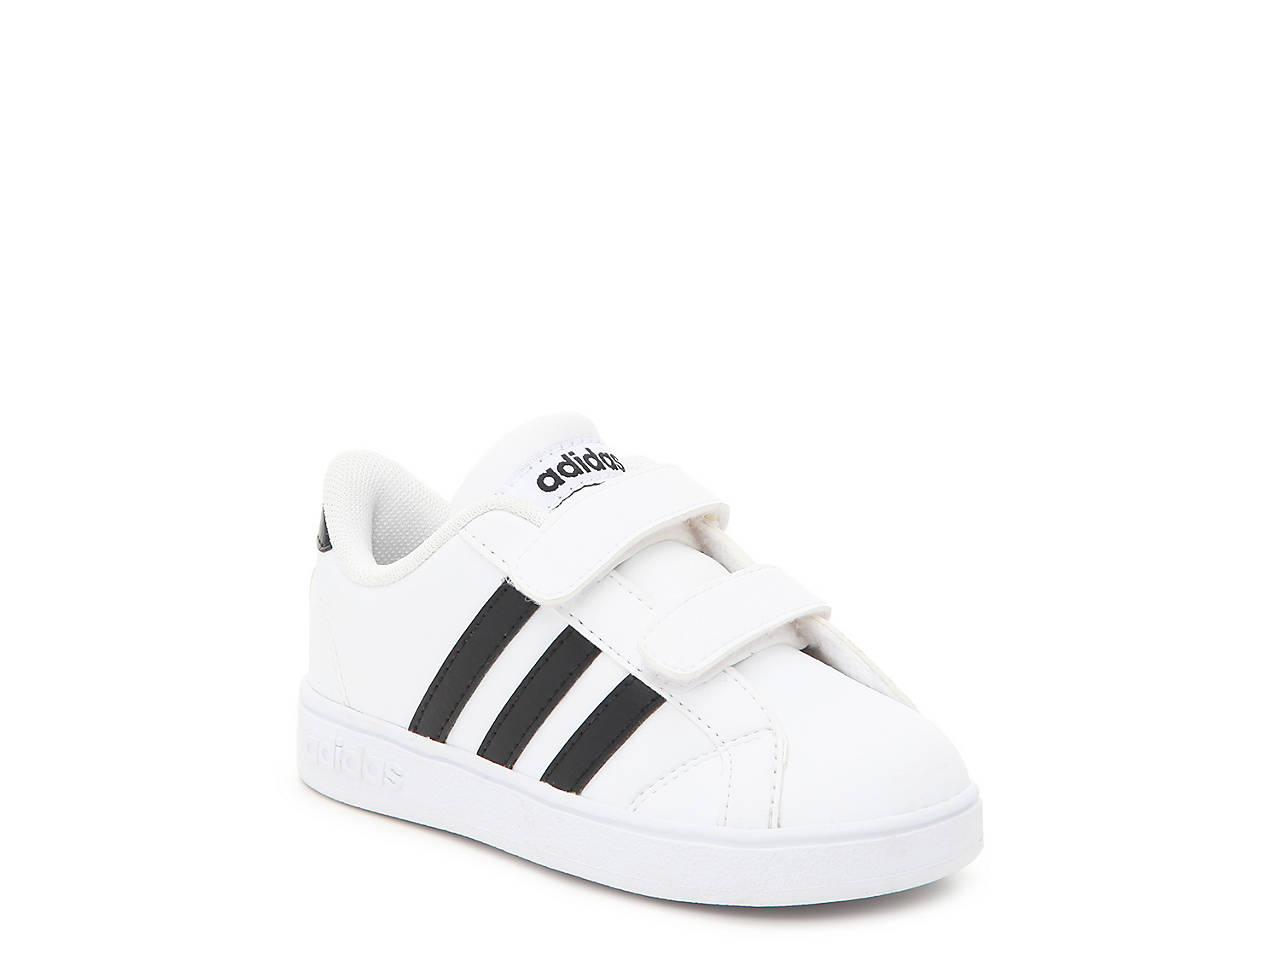 Boys' Shoes Clothing, Shoes & Accessories Adidas Neo Boys Size 8 Infants